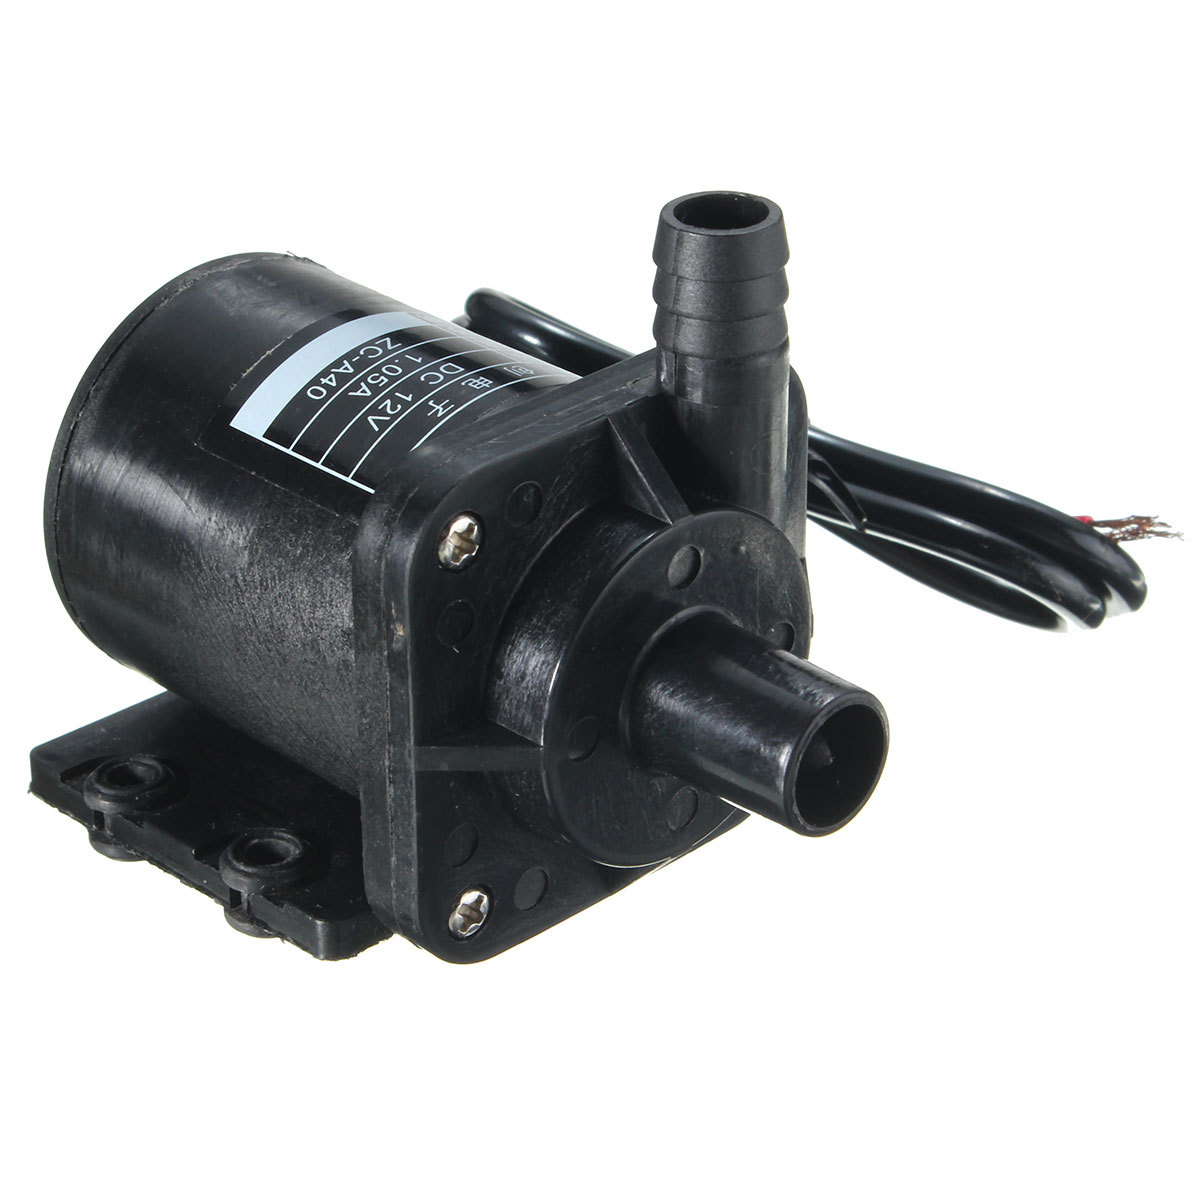 Submersible Mini Water Pump Electric Magnetic Dc 12v Motor